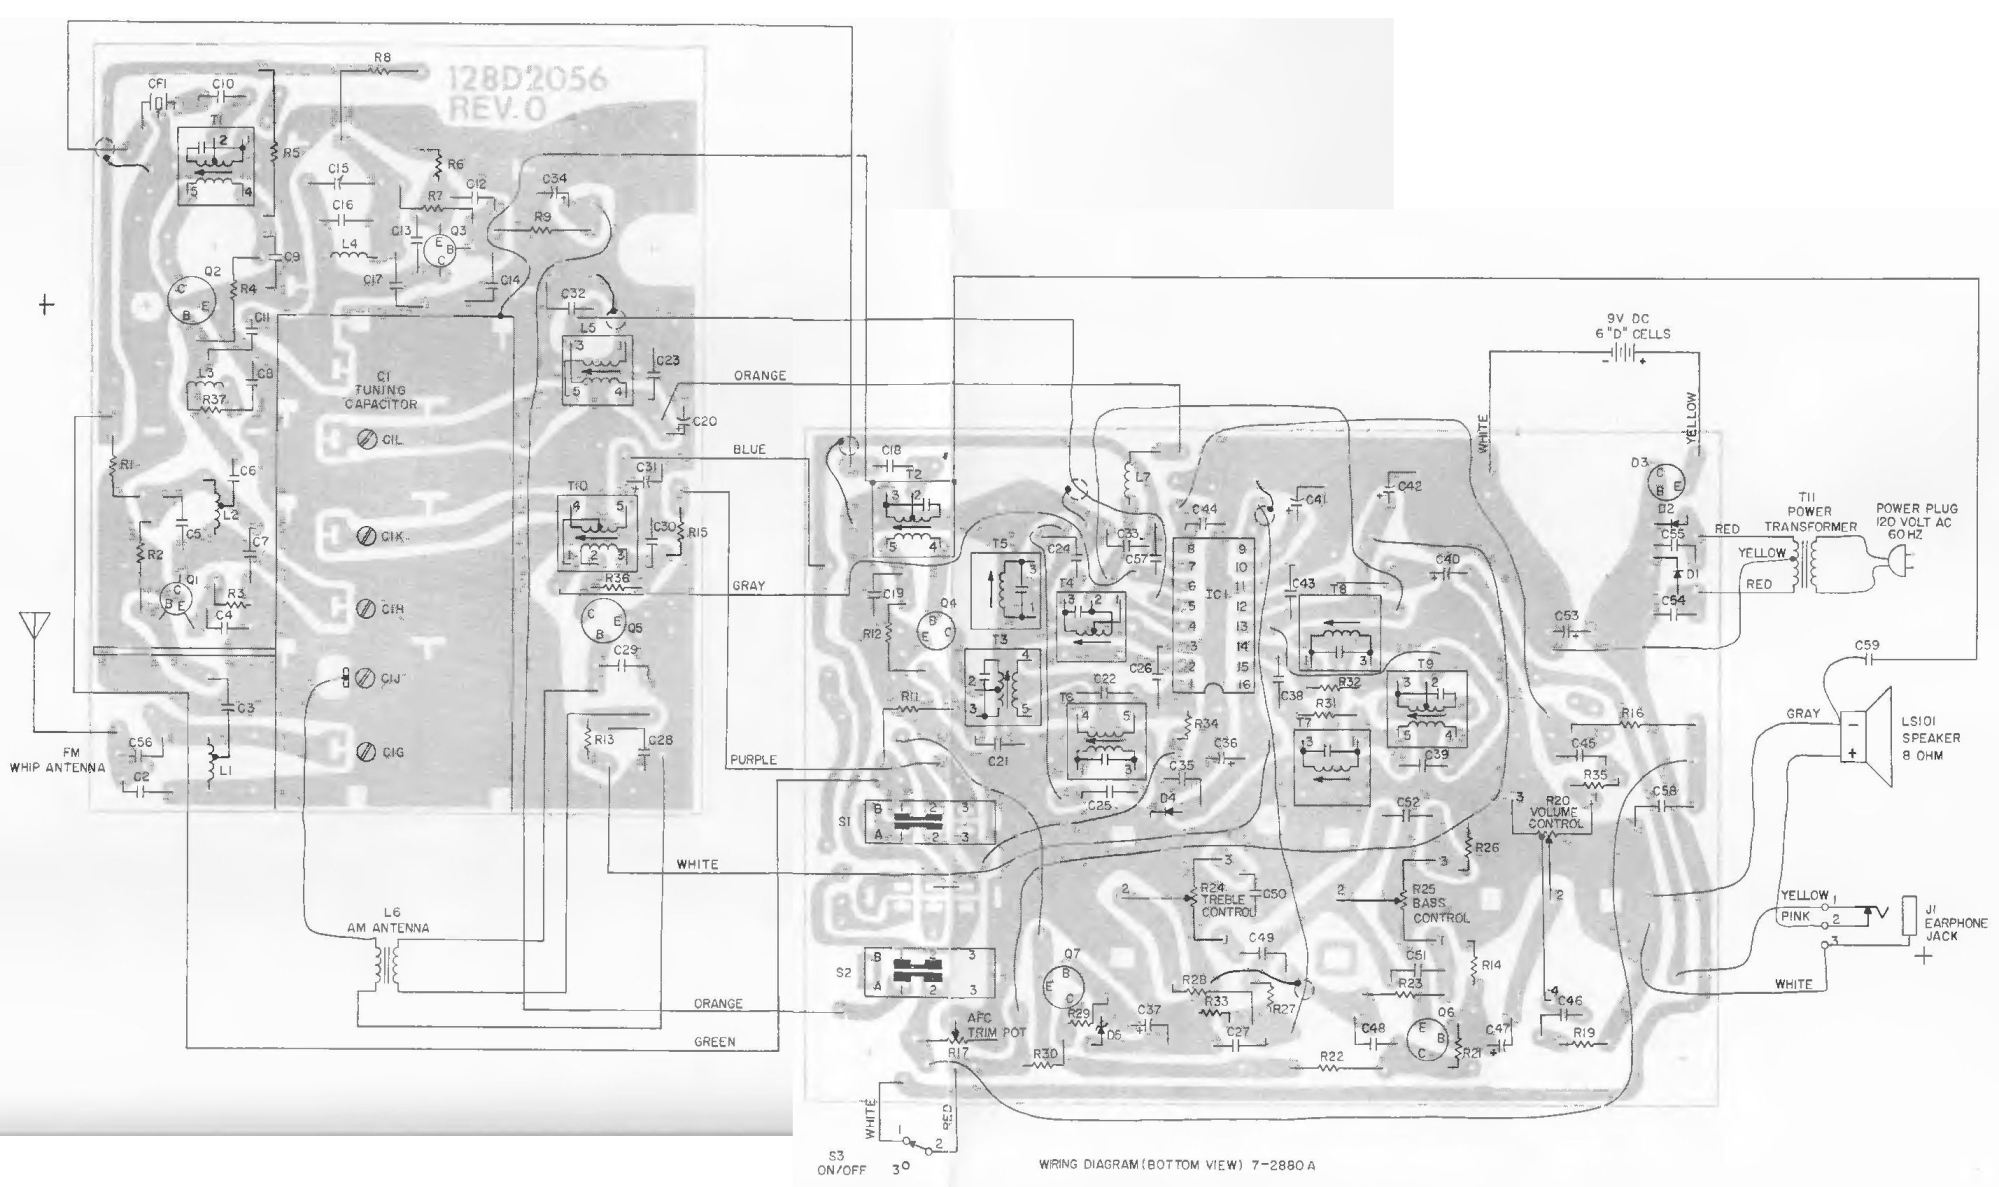 hight resolution of cat c15 wiring diagram get free image about wiring diagram cat c12 engine wiring diagram cat 3126 engine sensor diagram